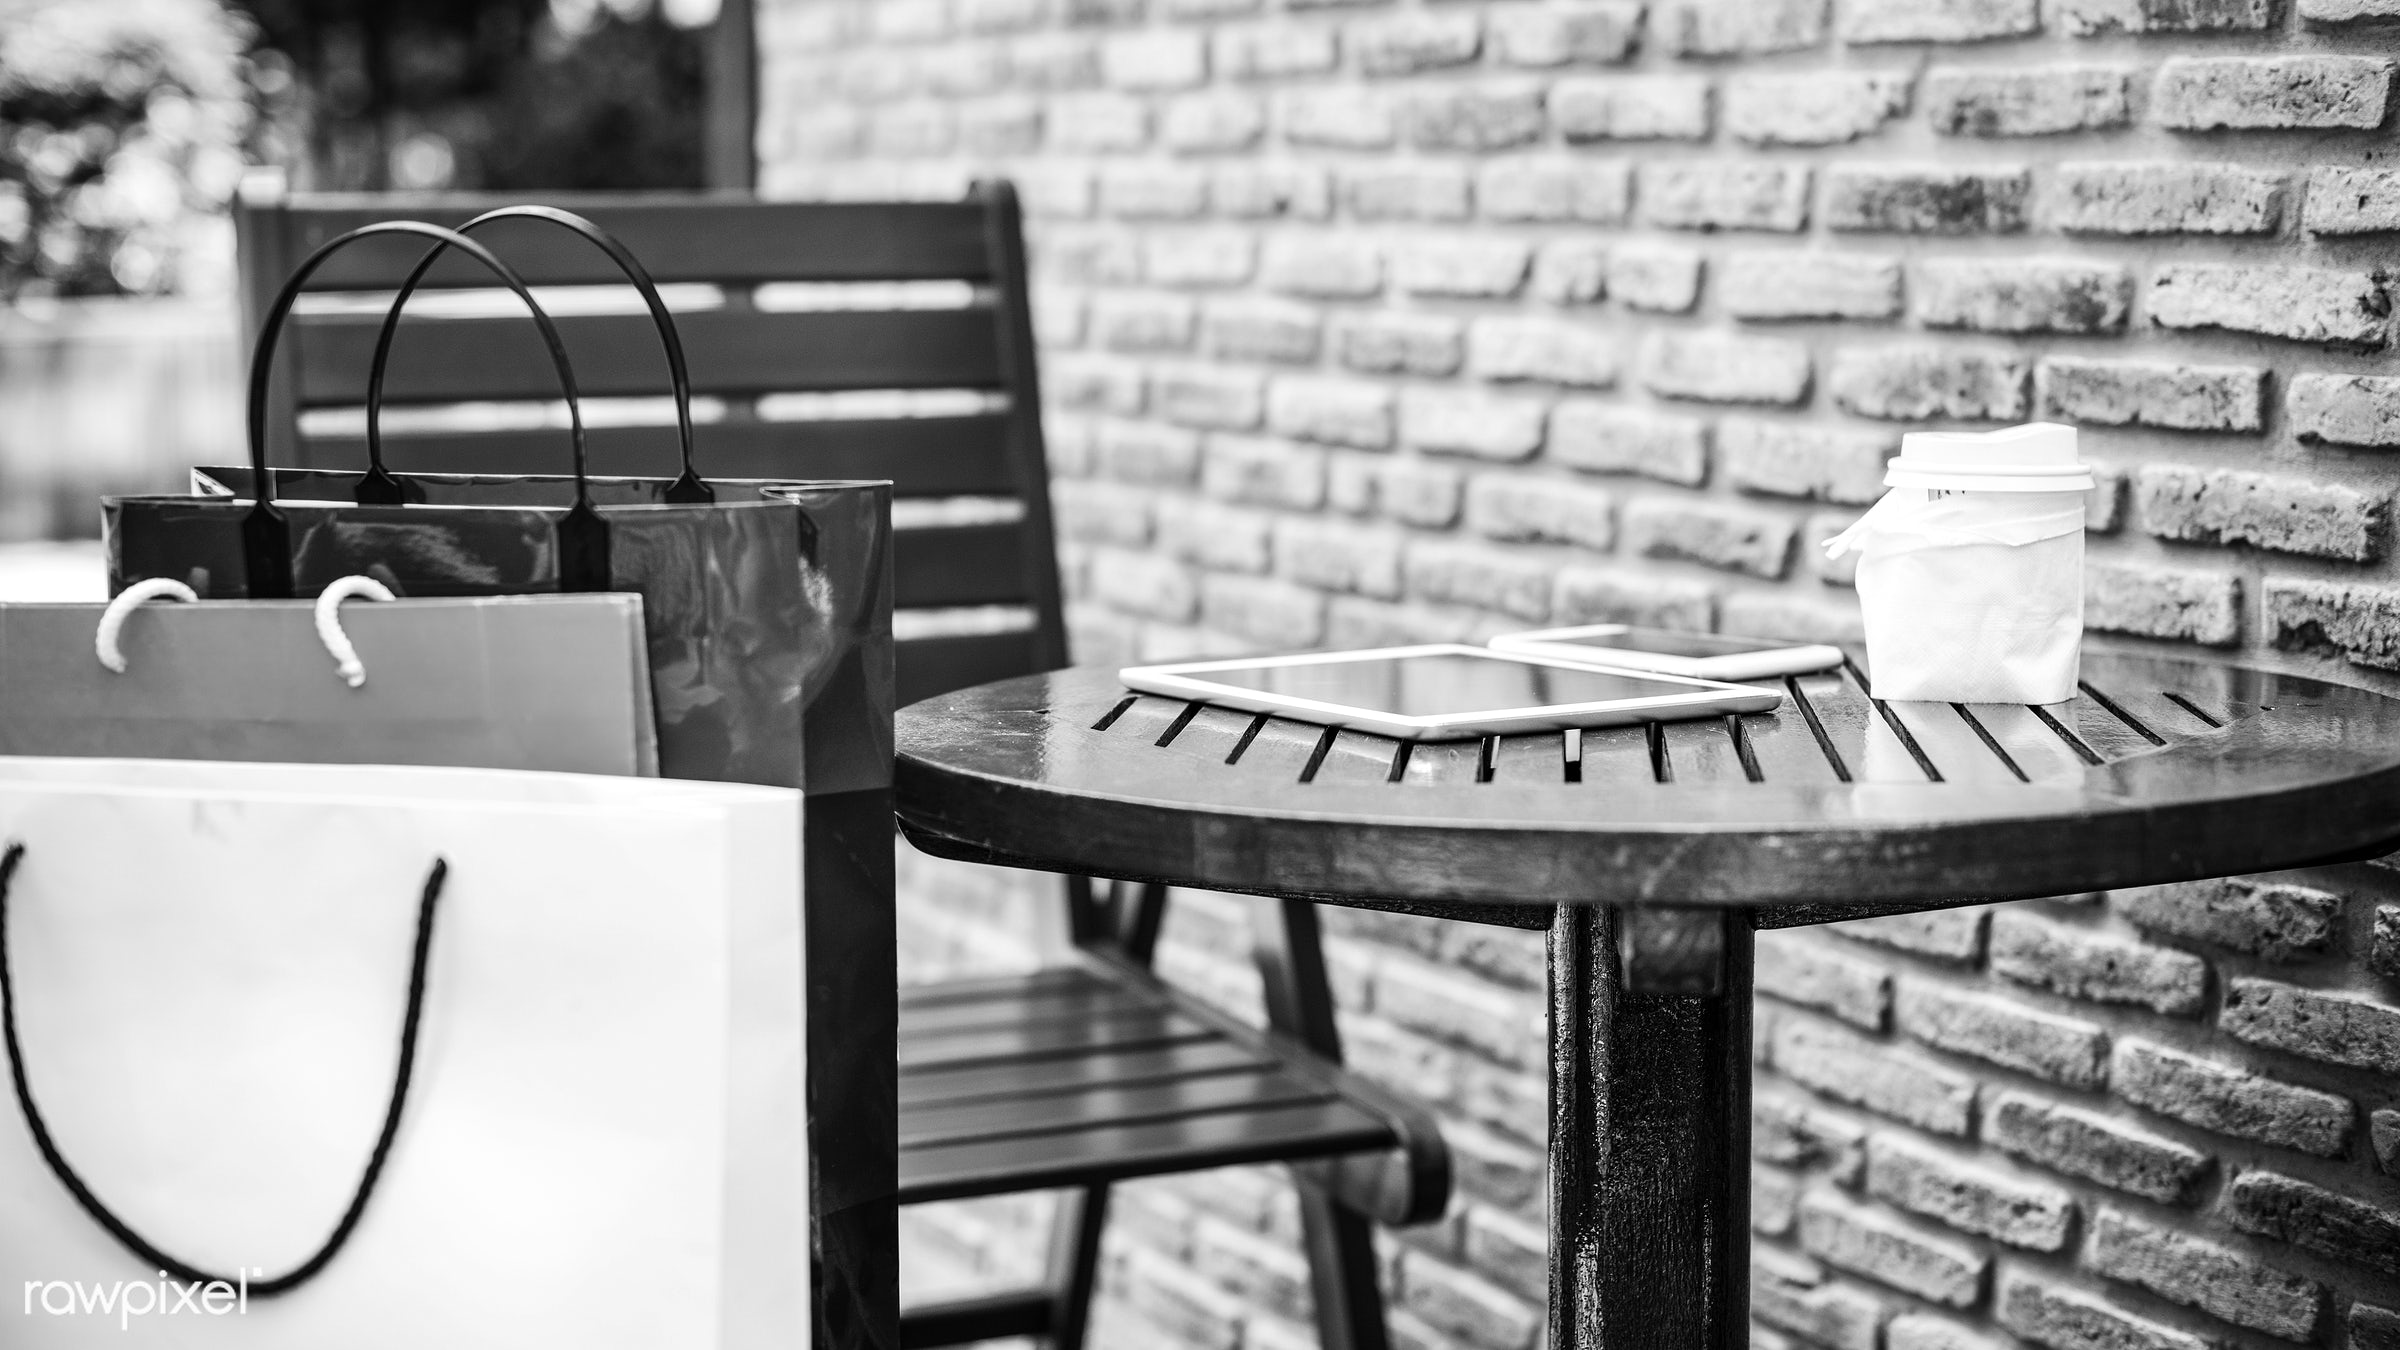 brick, brick wall, buyer, buying, cafe, chair, coffee, coffee shop, commerce, communication, connection, consumer,...